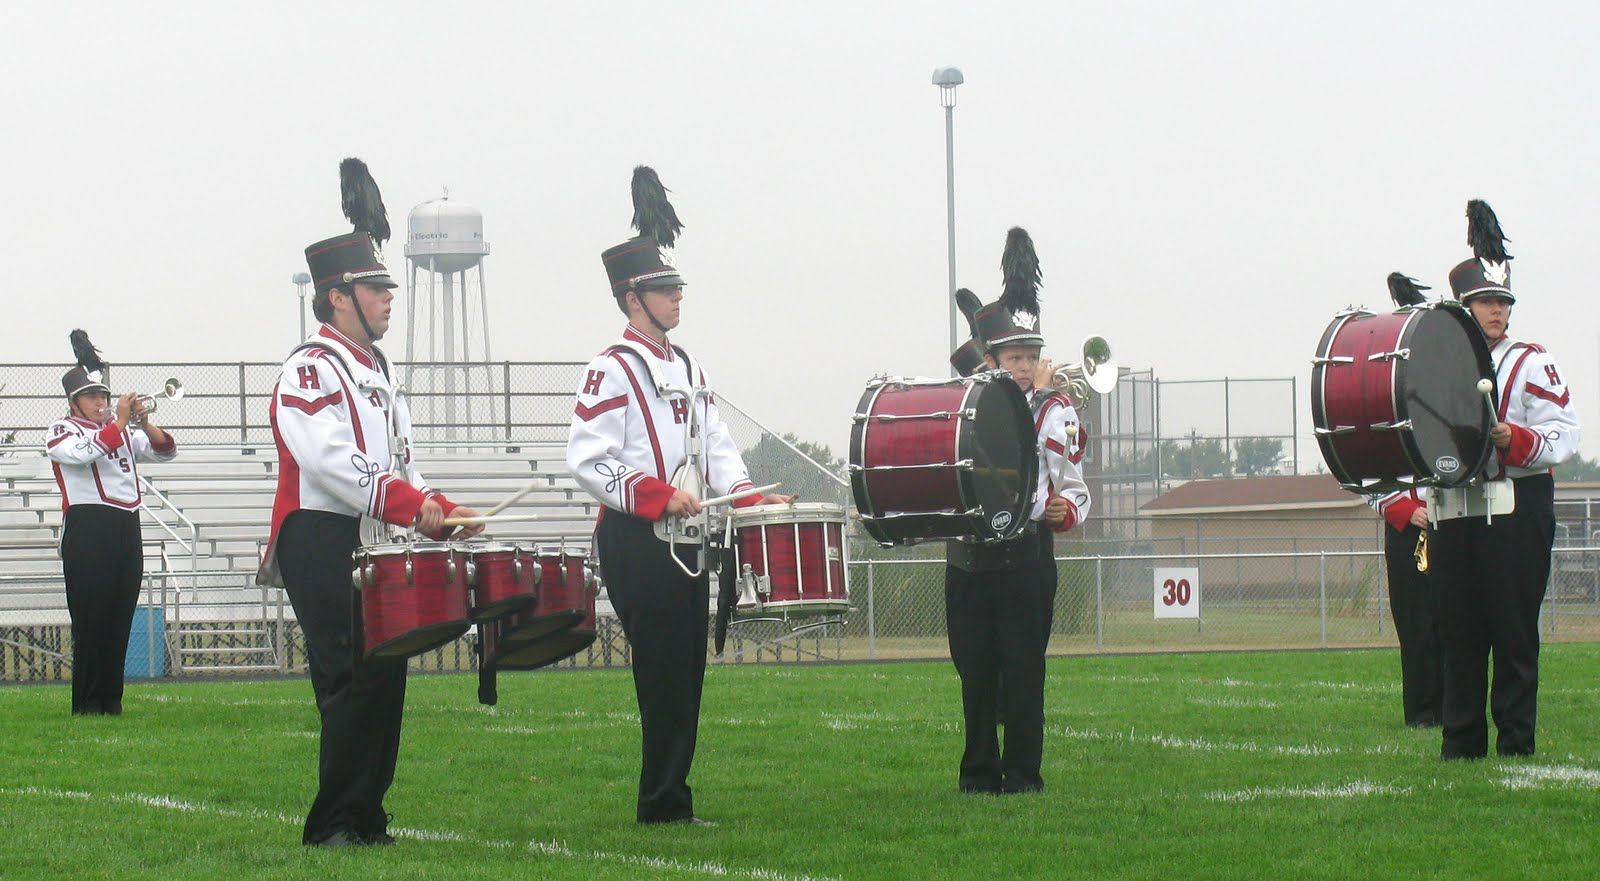 The uniforms have changed, but the sound remains the same.